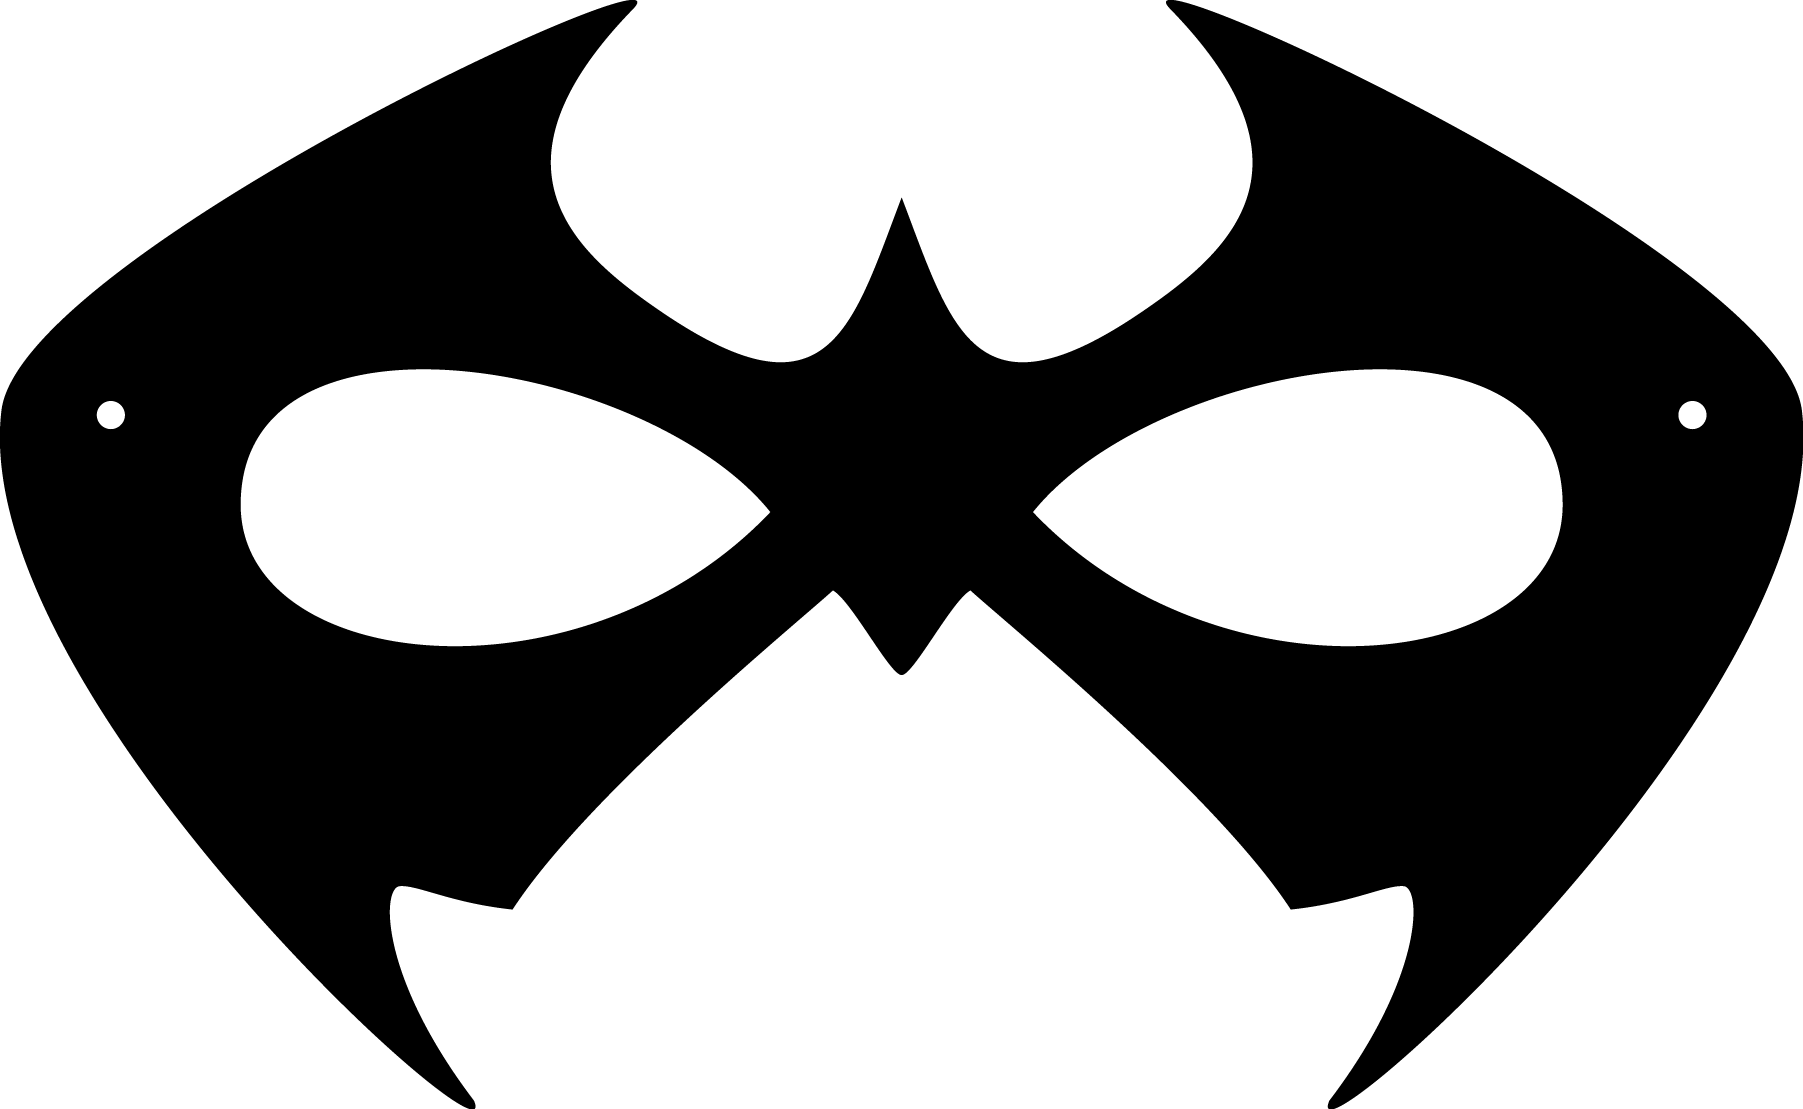 Ghostface Drawing Masked Face Transparent Png Clipart Free